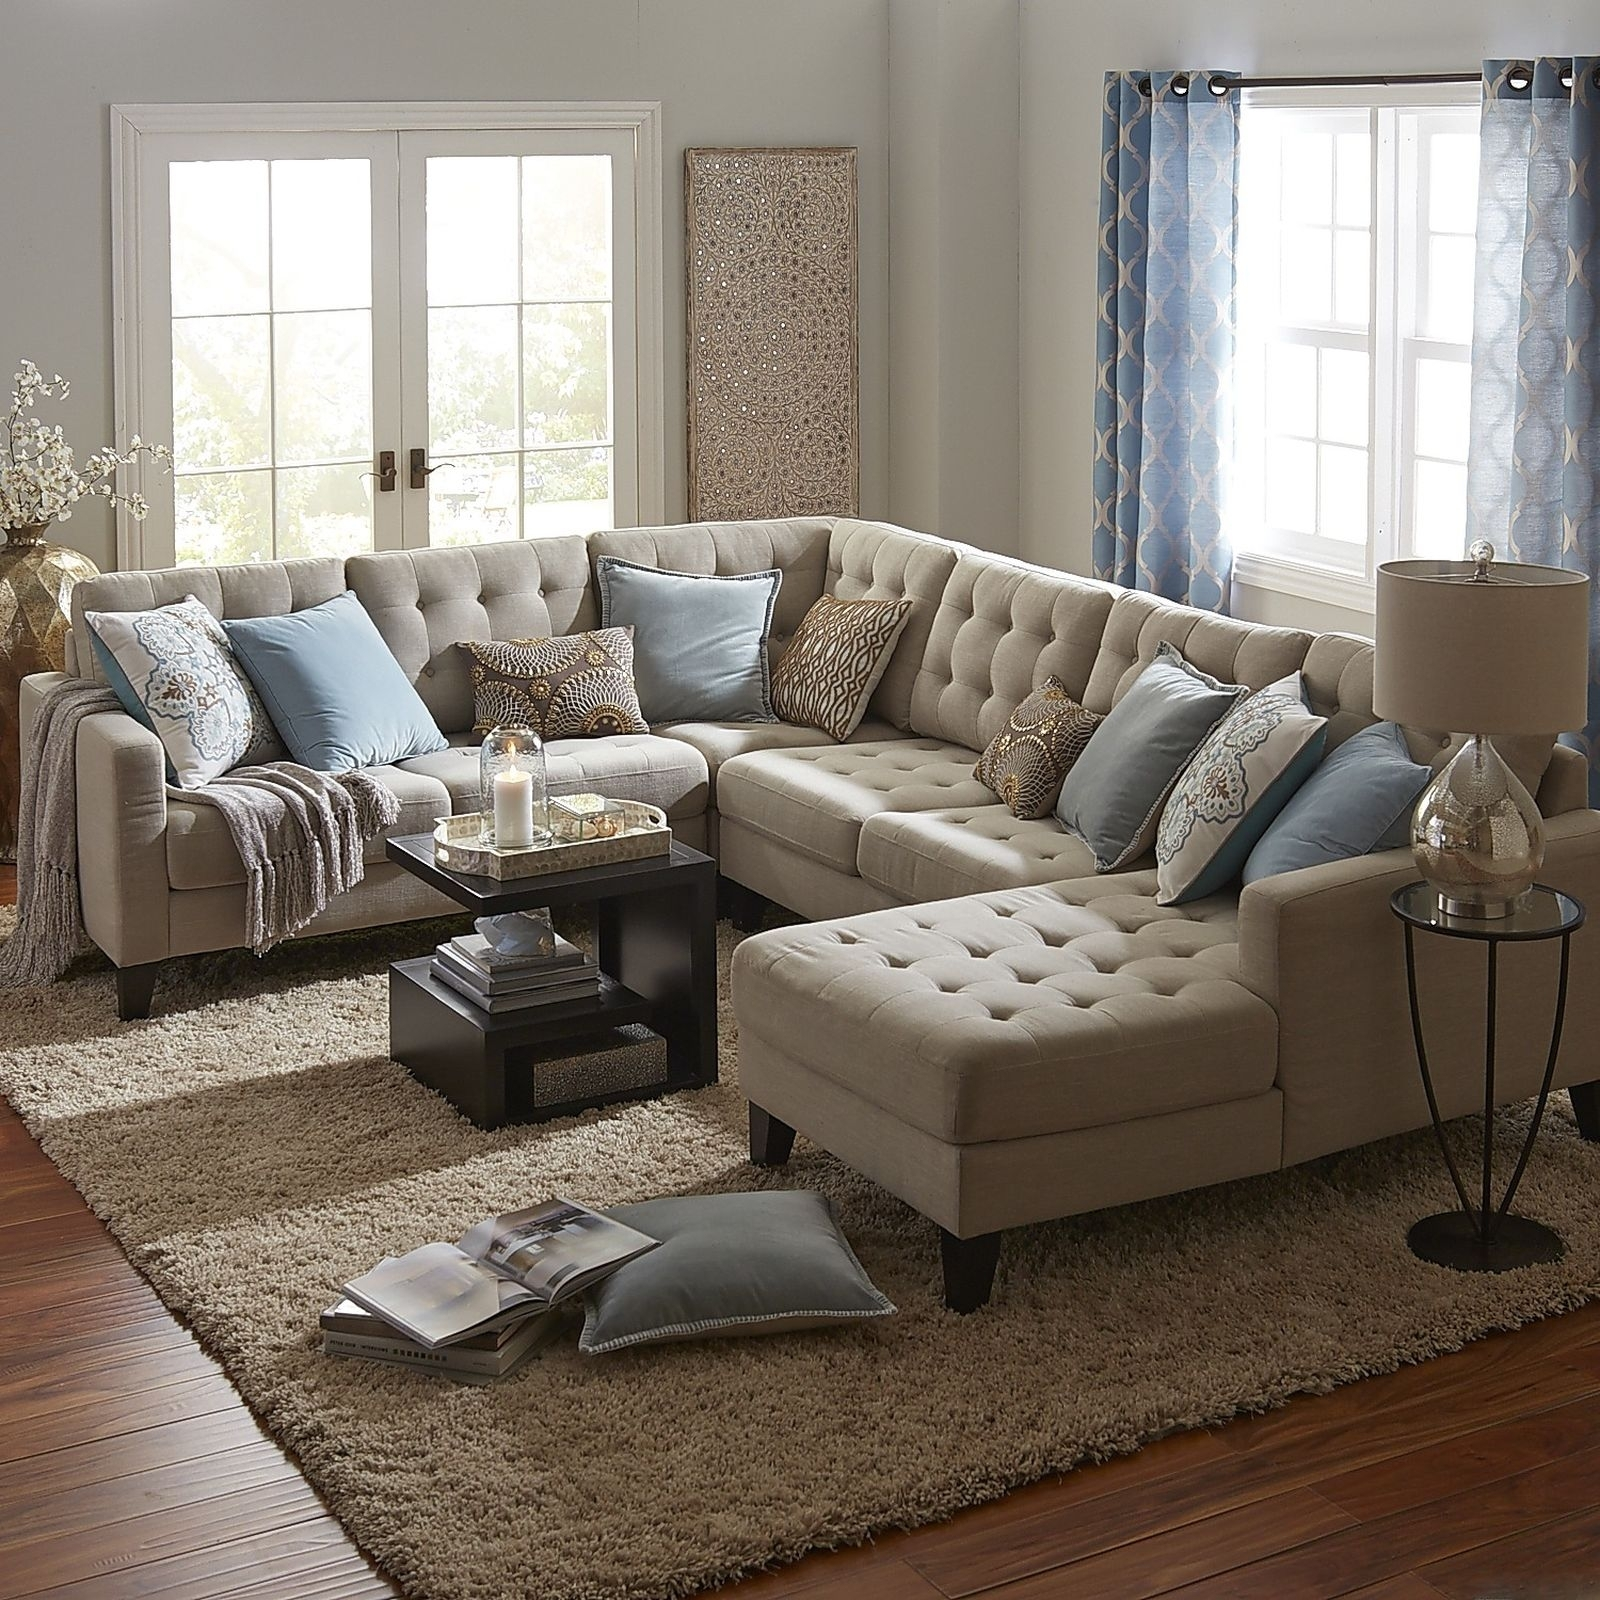 Sectional Sofas (View 6 of 10)